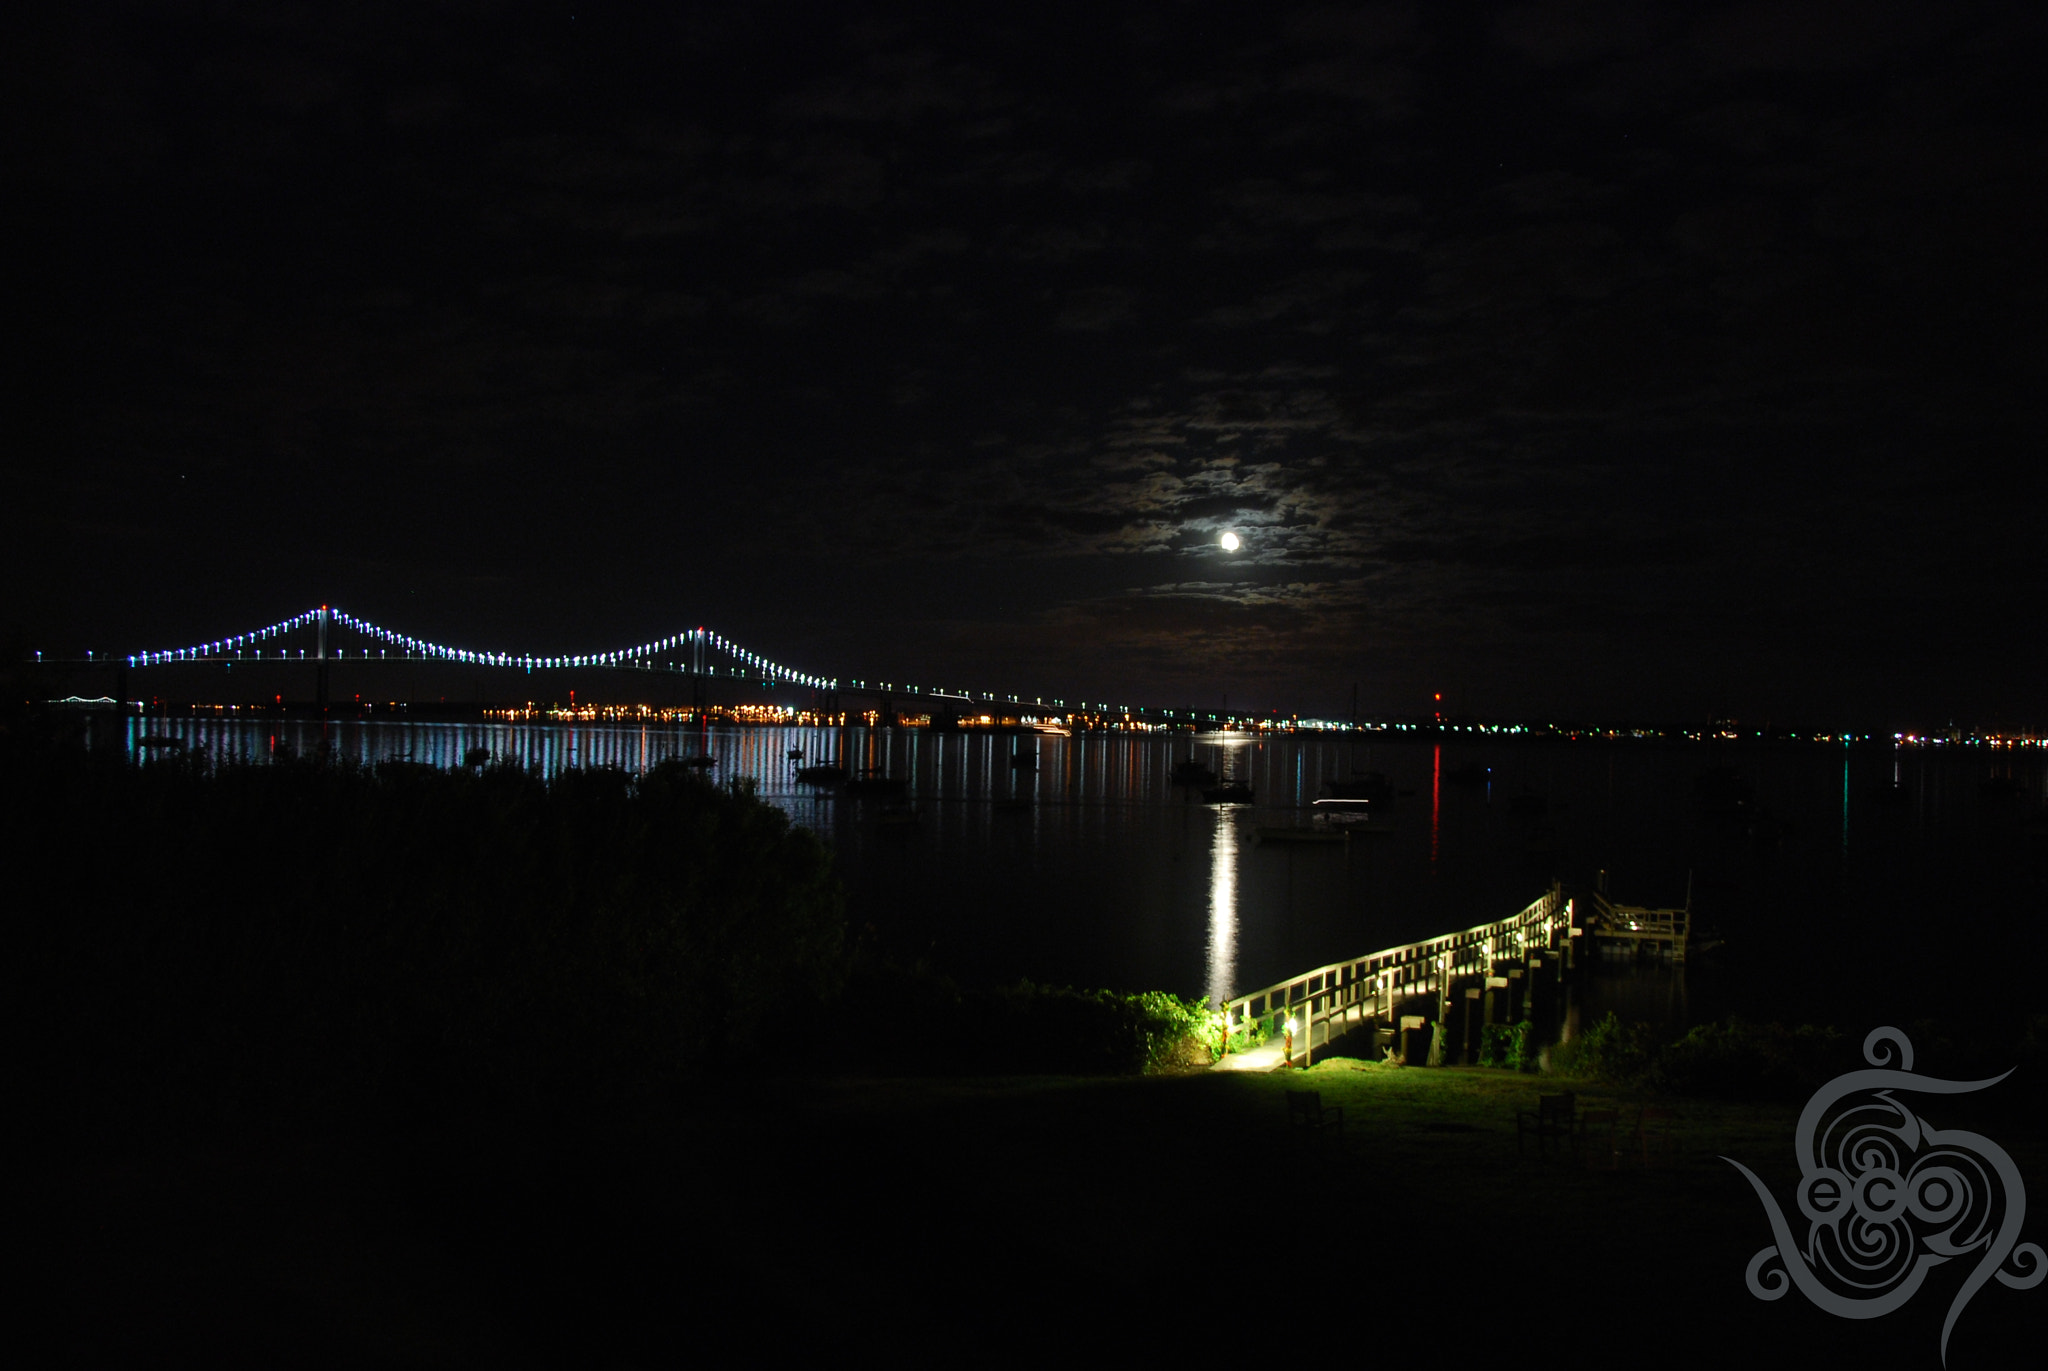 Photograph Newport Bridge from Jamestown by Ed O'Malley on 500px